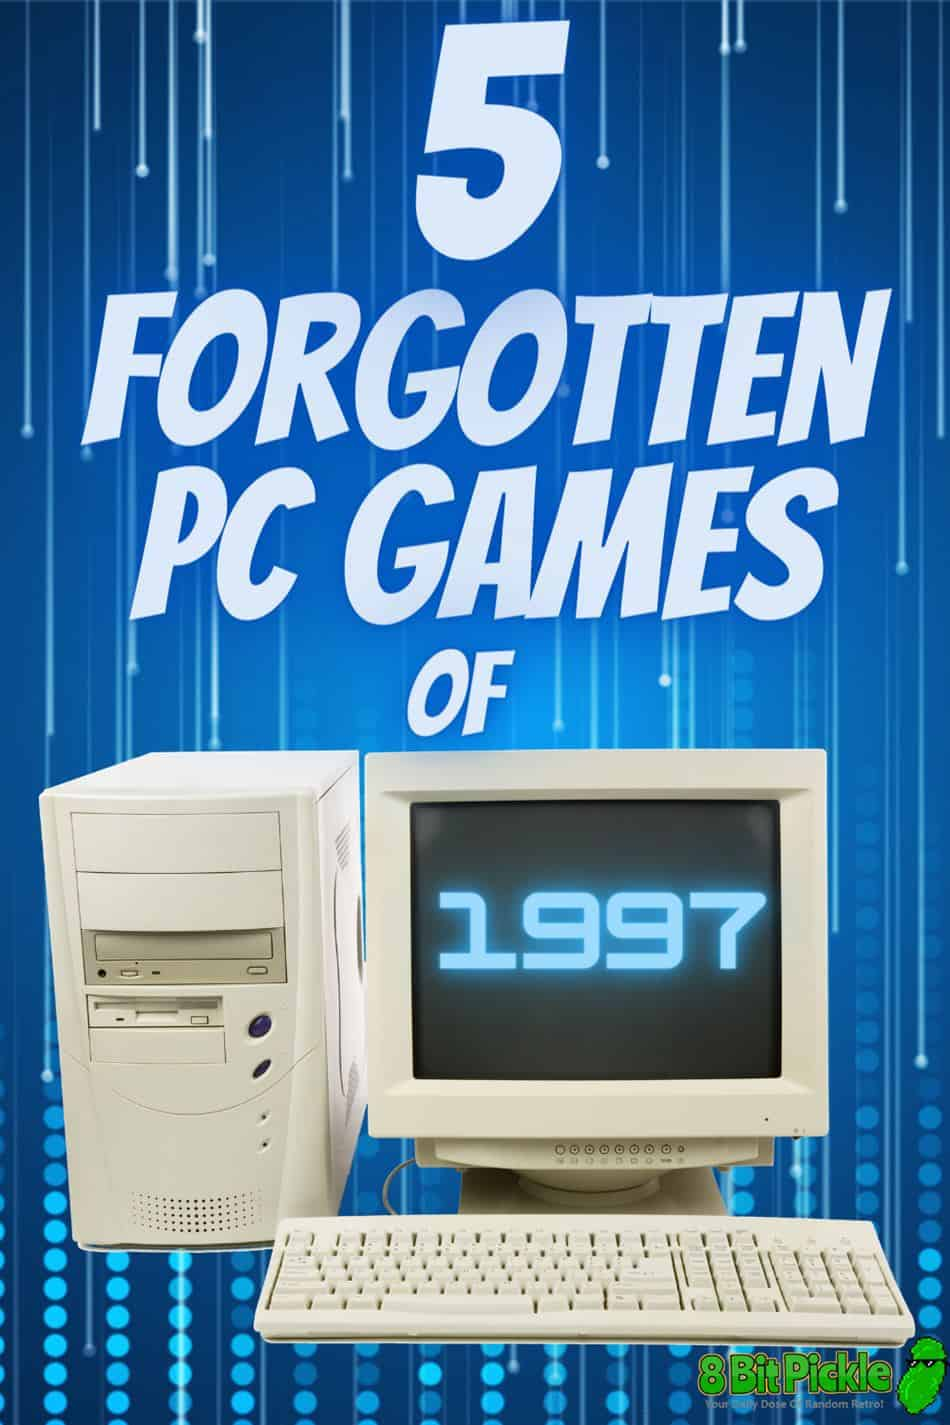 5 Forgotten PC Games of 1997